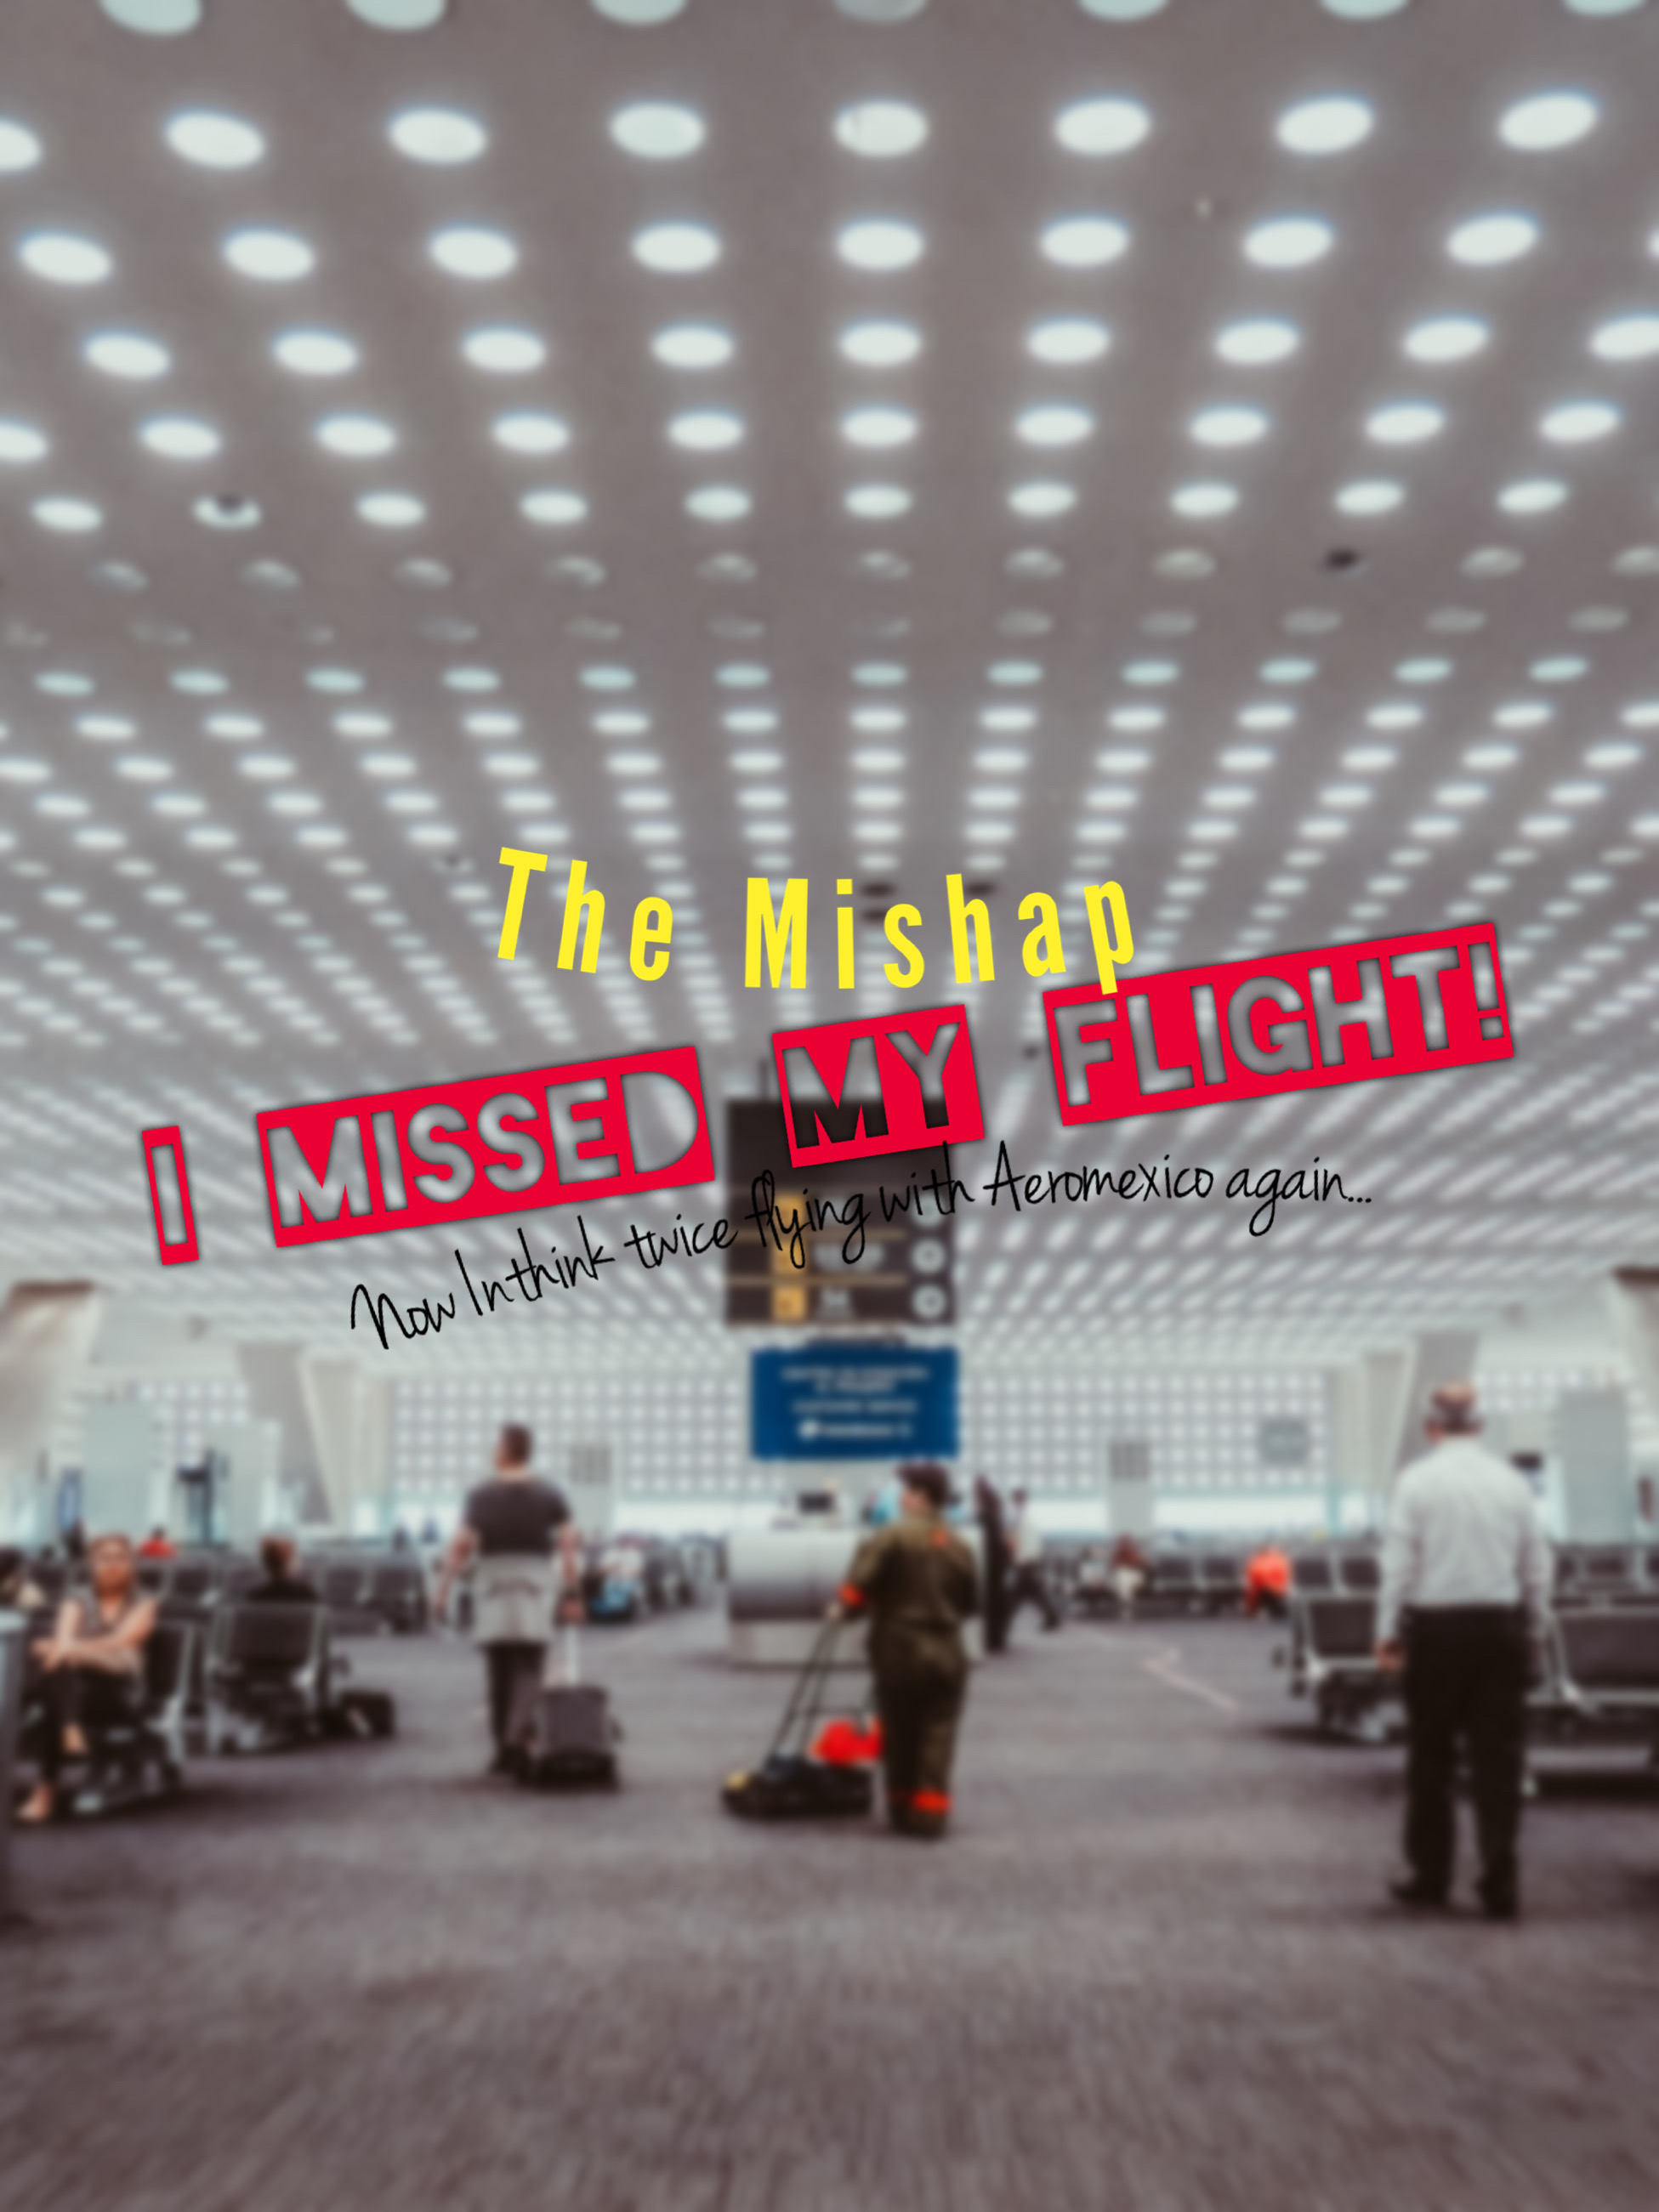 The Mishap: I Missed My Flight!